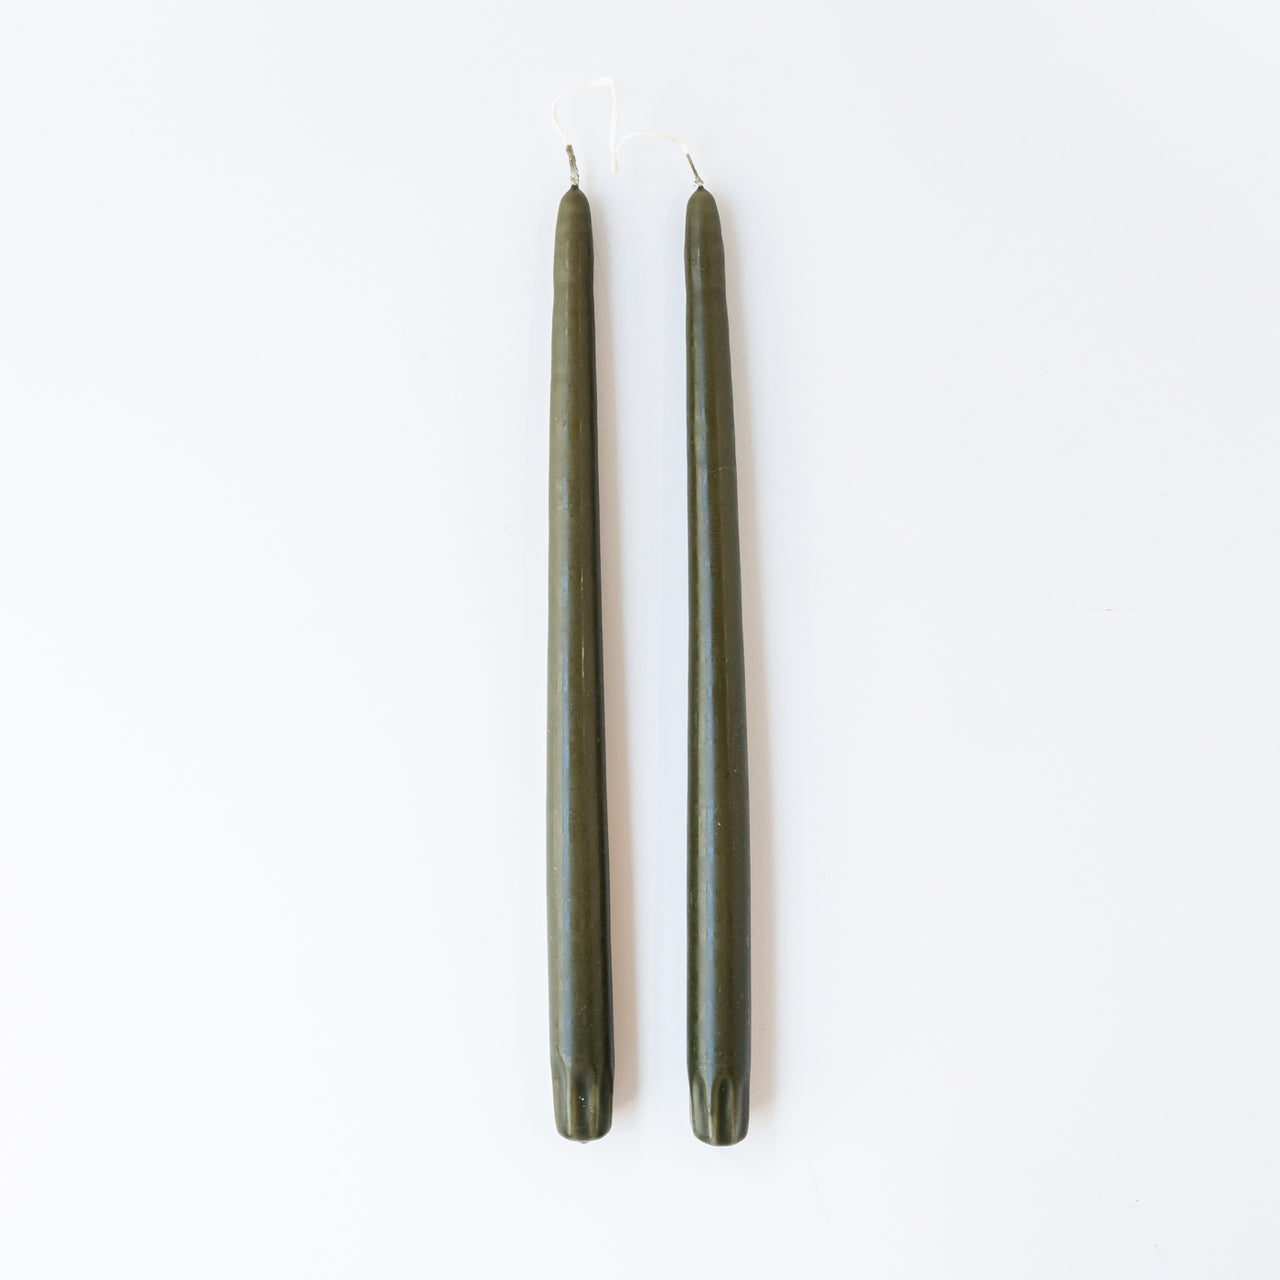 Pair of Taper Candles - Olive